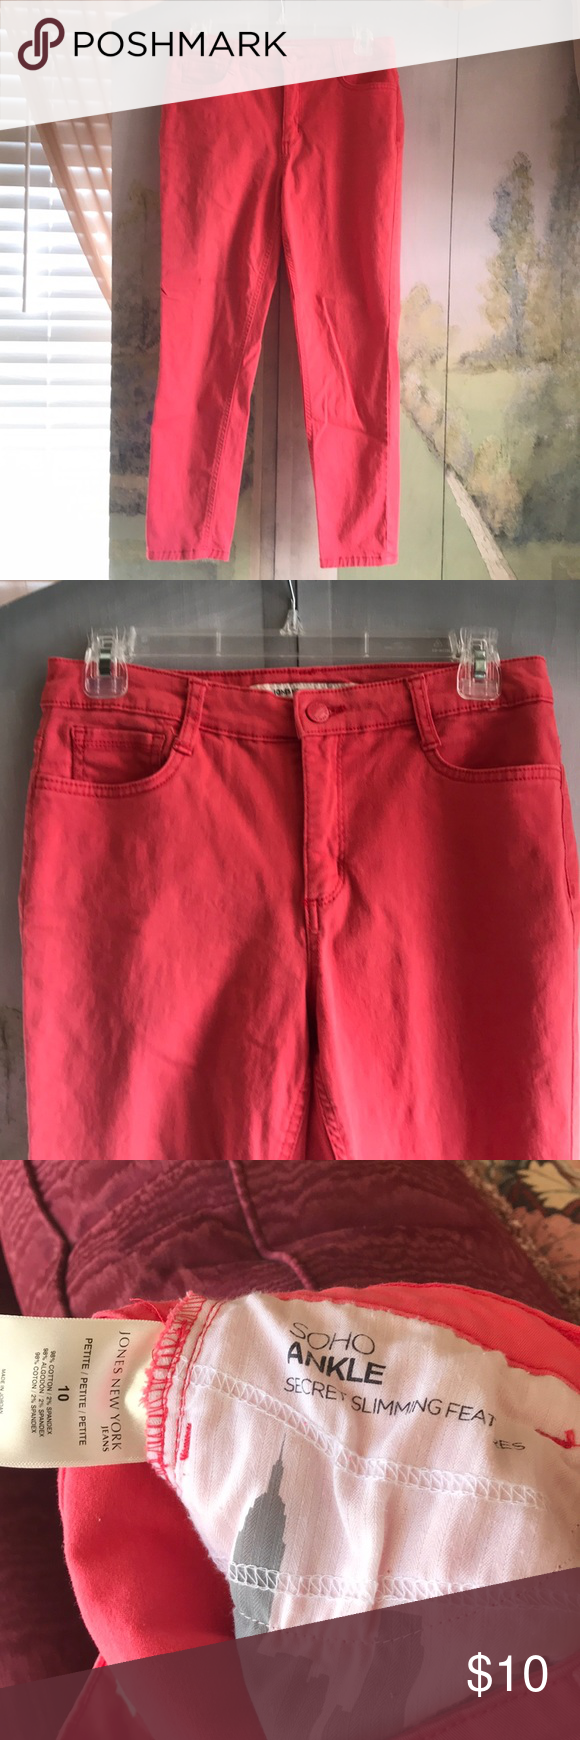 Jones Of New York Pink Jeans Pink Jeans Petite Jeans Clothes Design